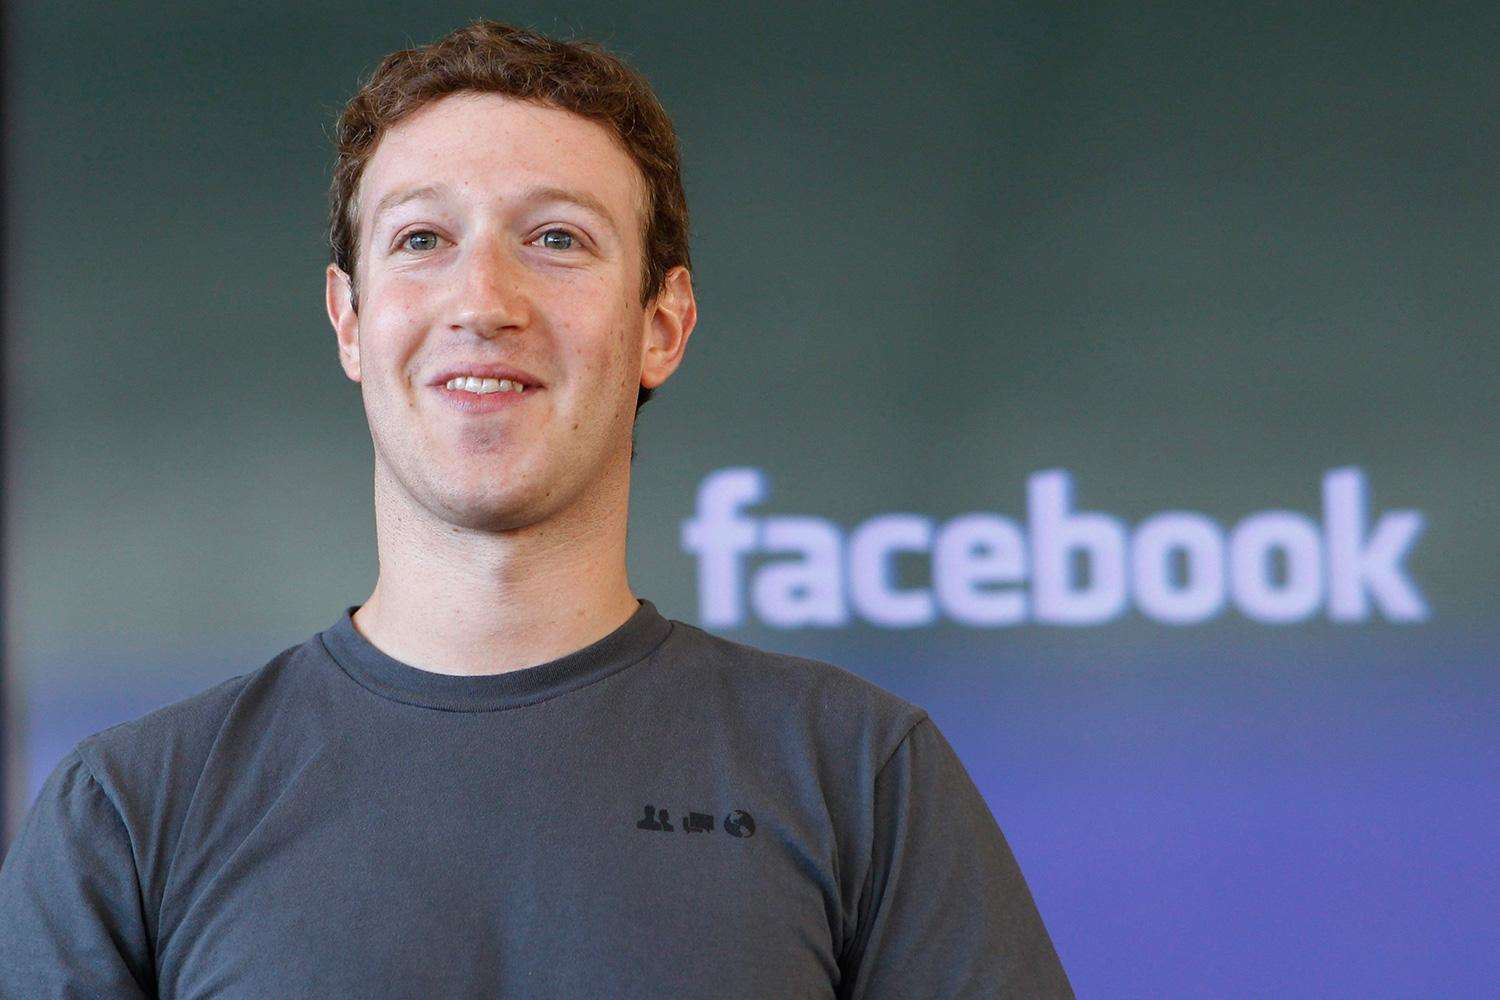 Facebook rides heavy mobile ad gains to Q2 beat